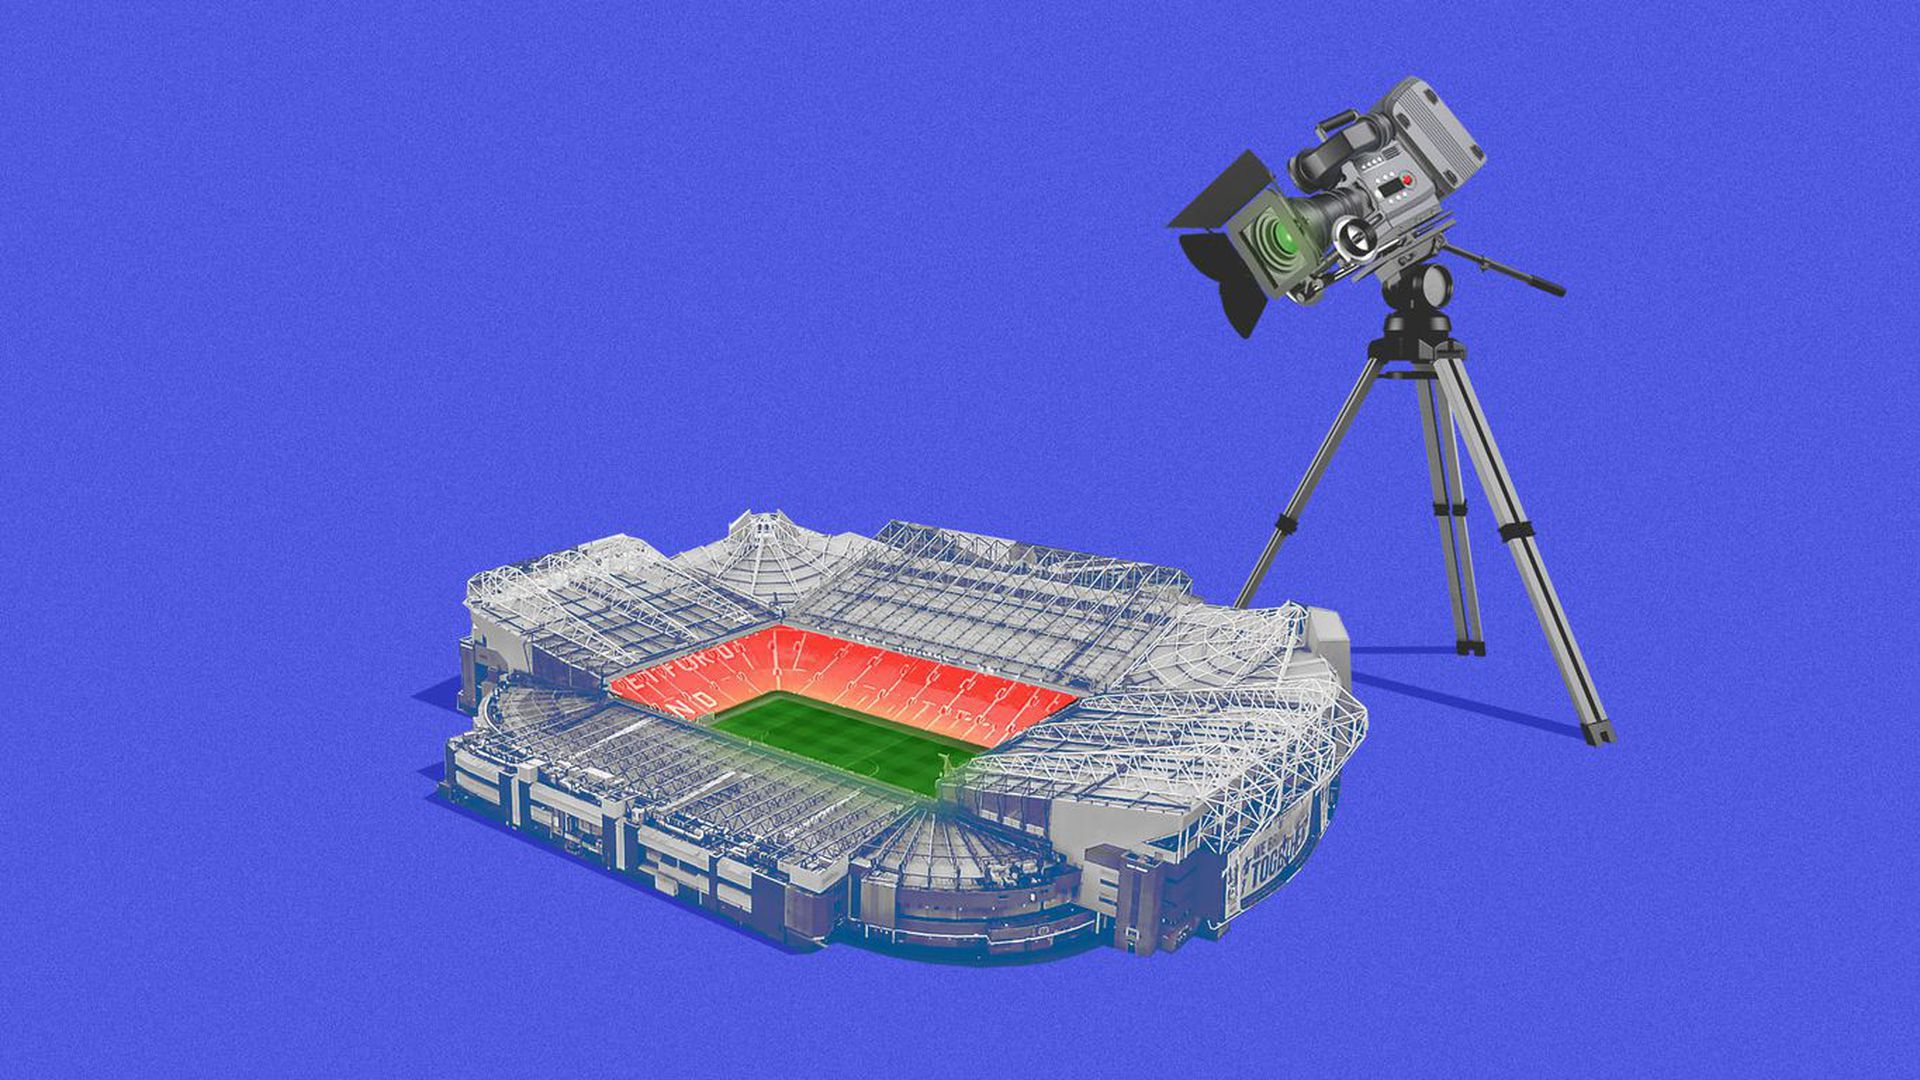 A camera pointed at a stadium.